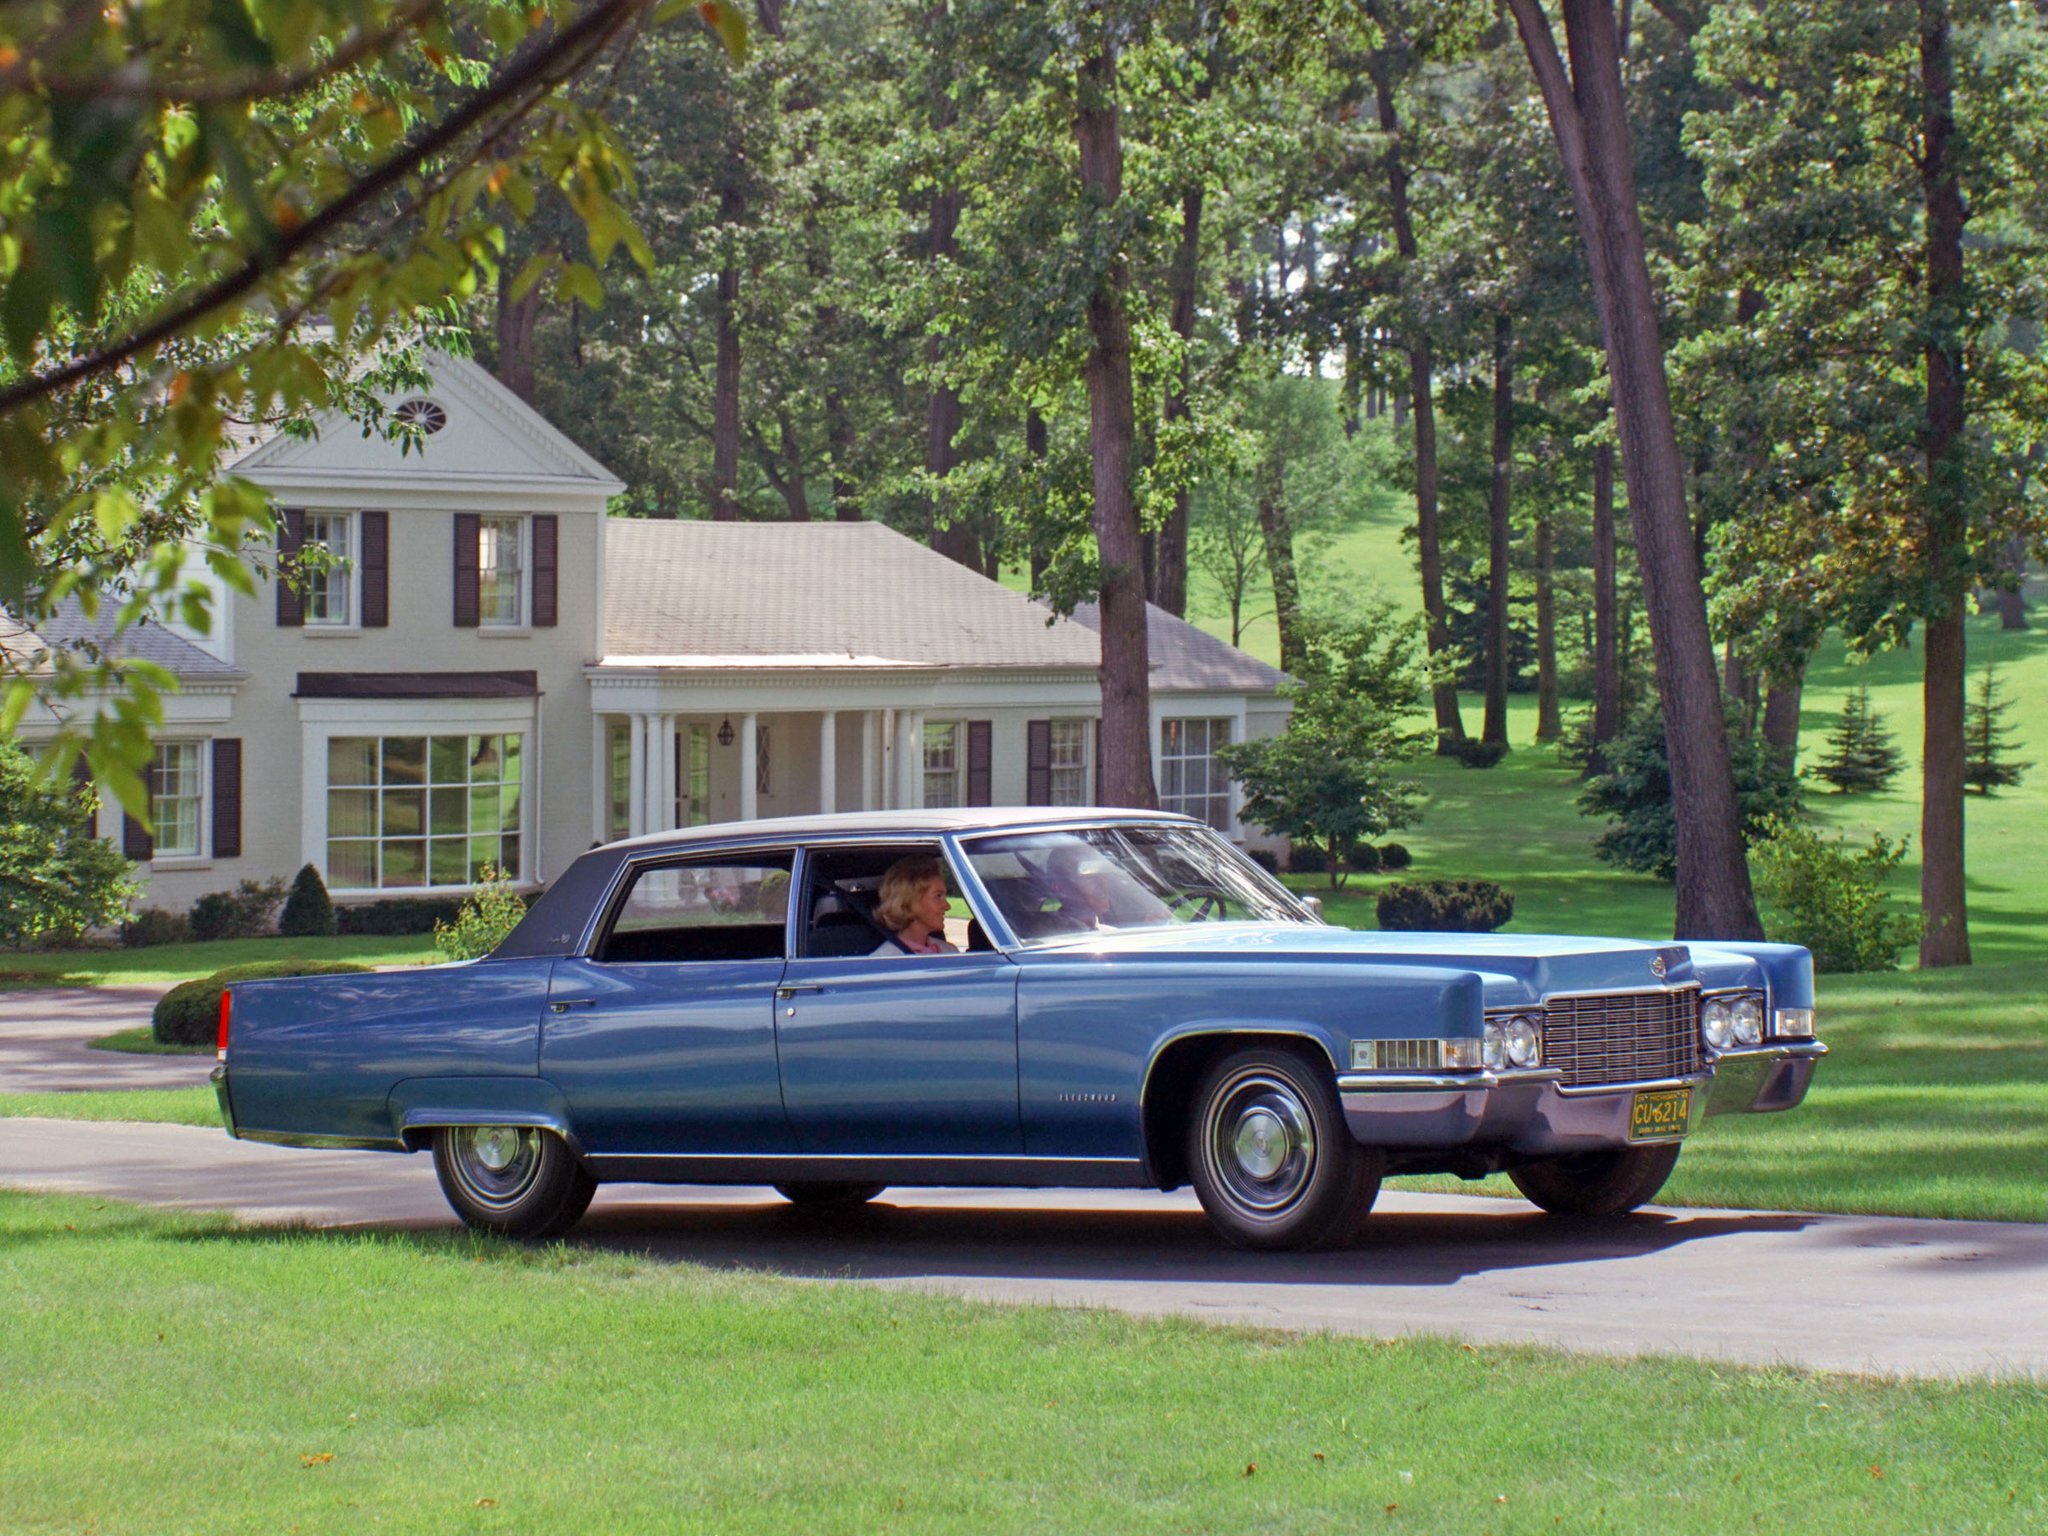 1973 Cadillac Sedan Deville1973 Coupe Deville In Surfers 1978 1969 Fleetwood Sixty Special Brougham